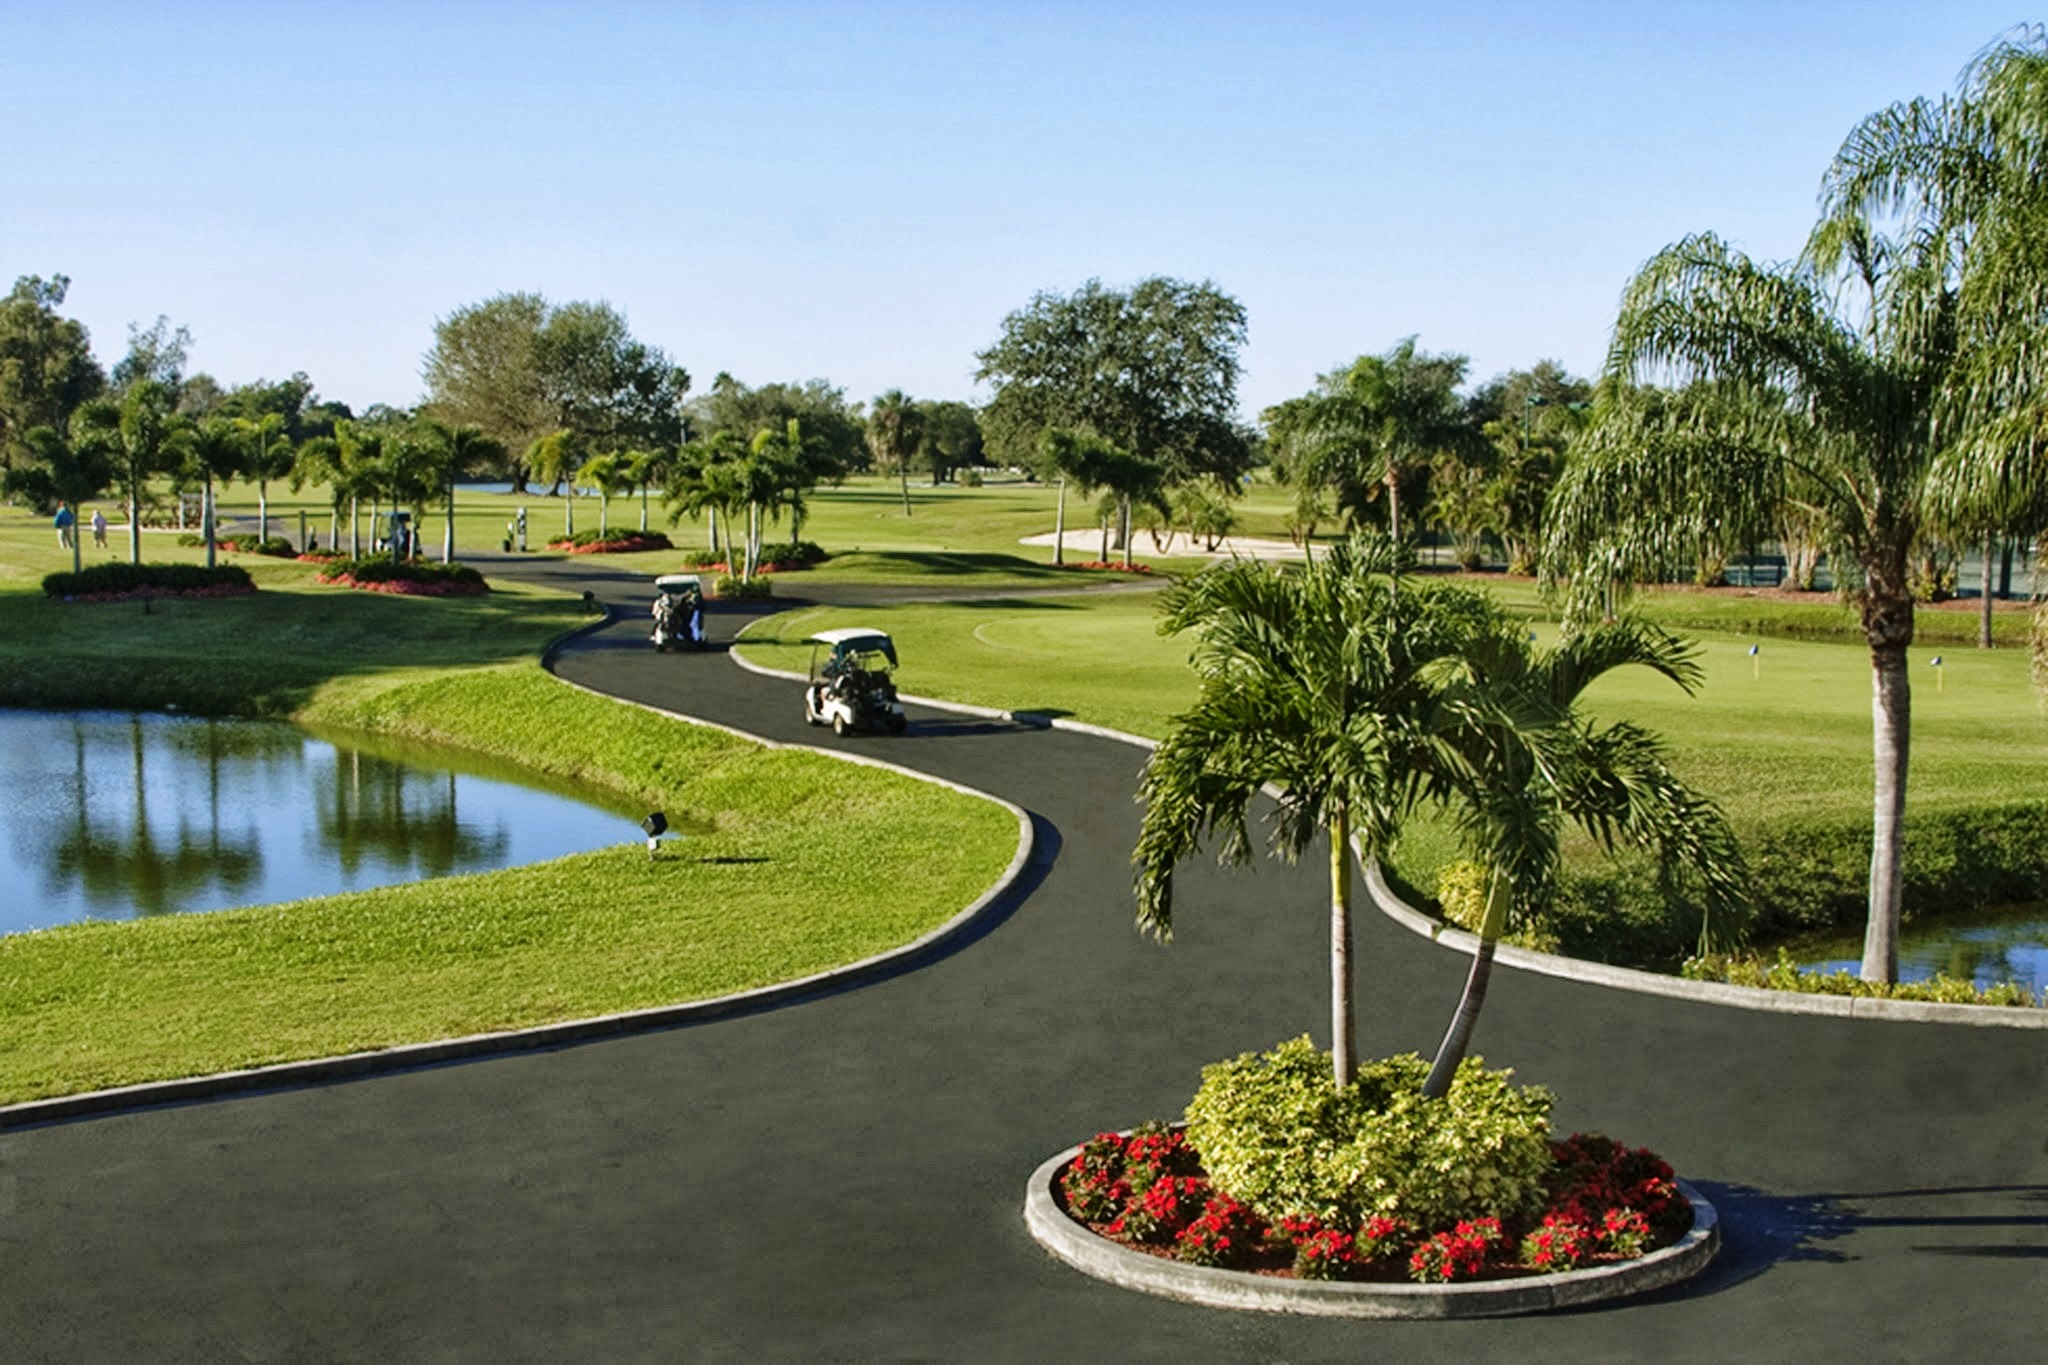 Overview of golf course named Country Club of Coral Springs